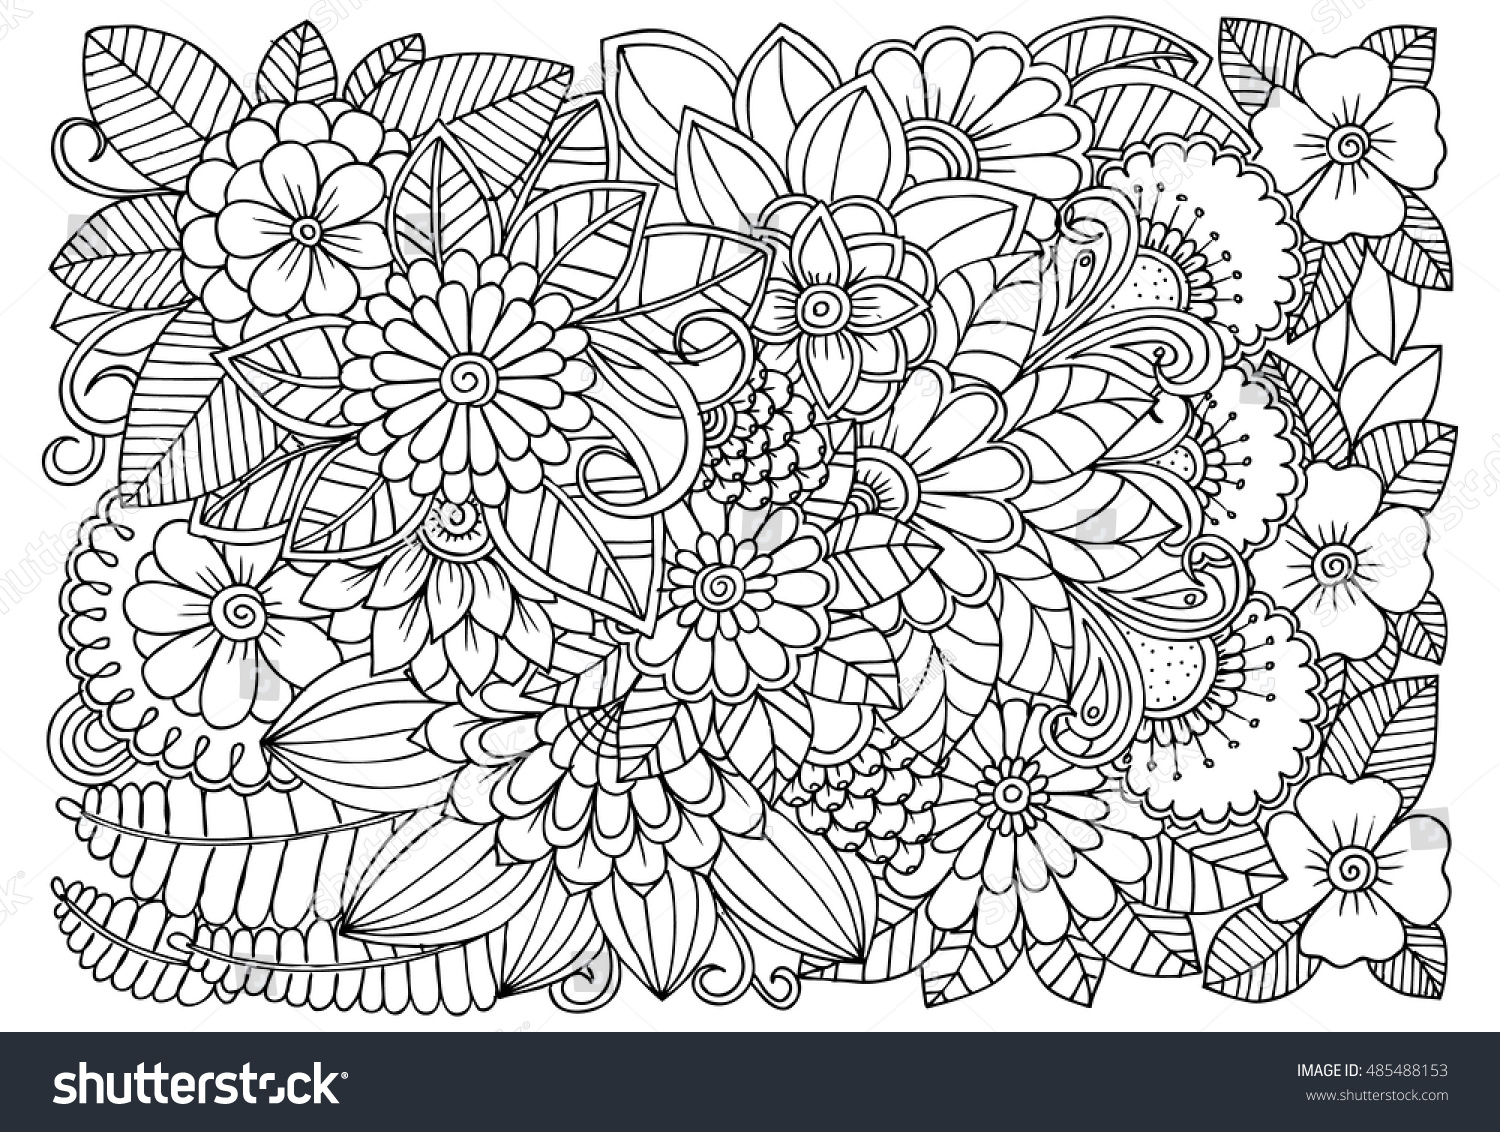 vector coloring page floral pattern doodle stock vector 485488153